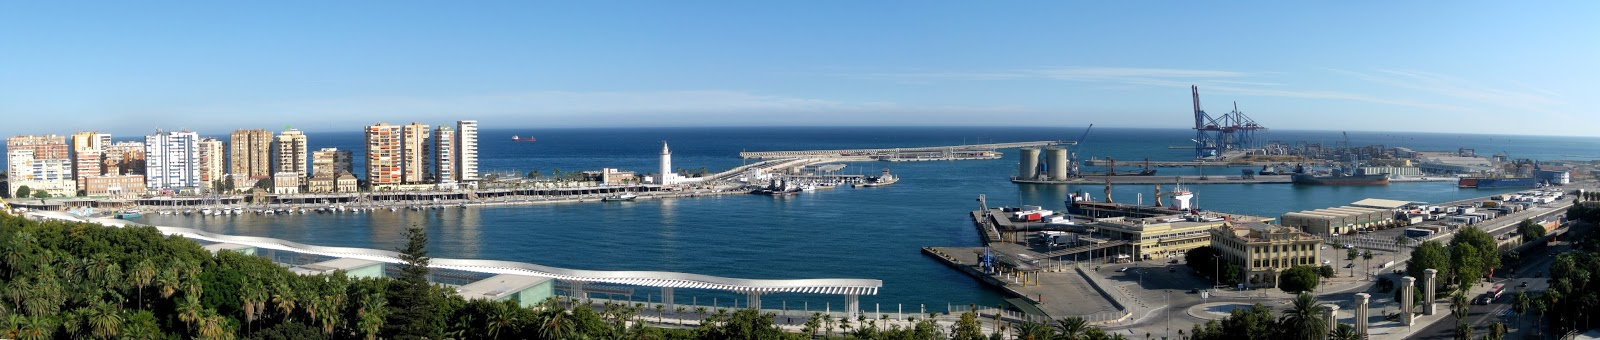 view over the harbour in Malaga